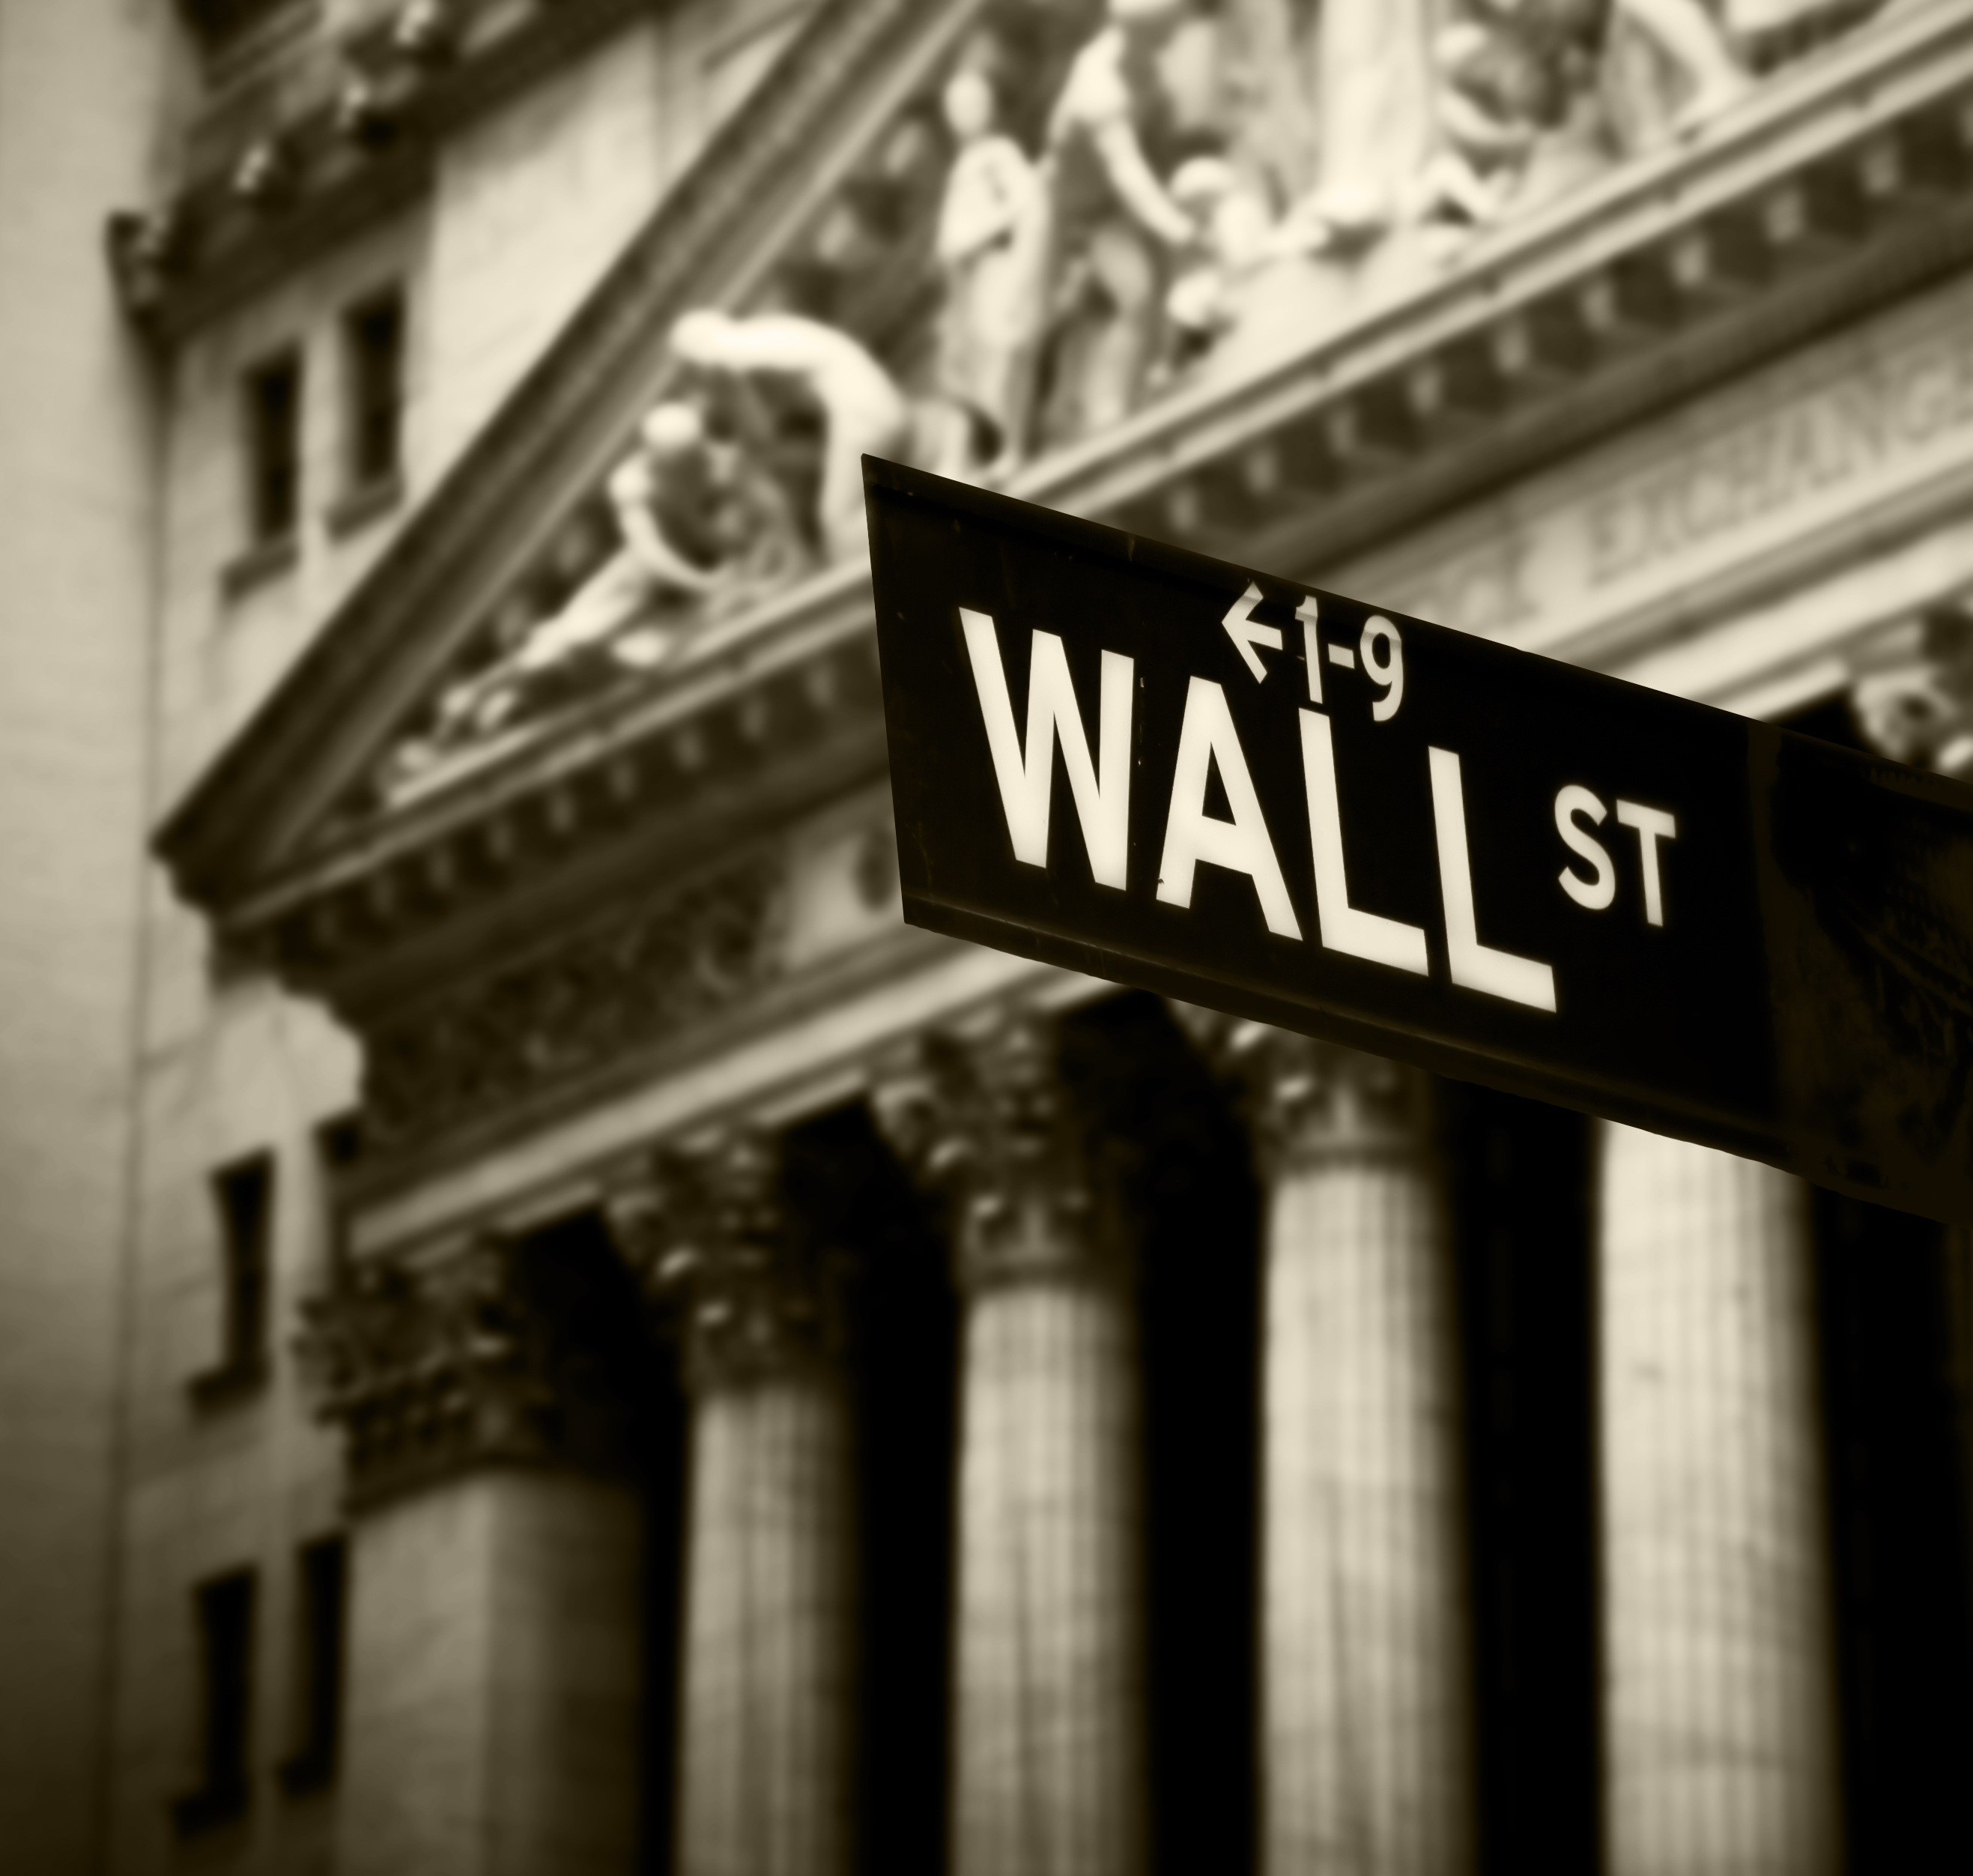 A Wall Street sign stands in front of a large building.